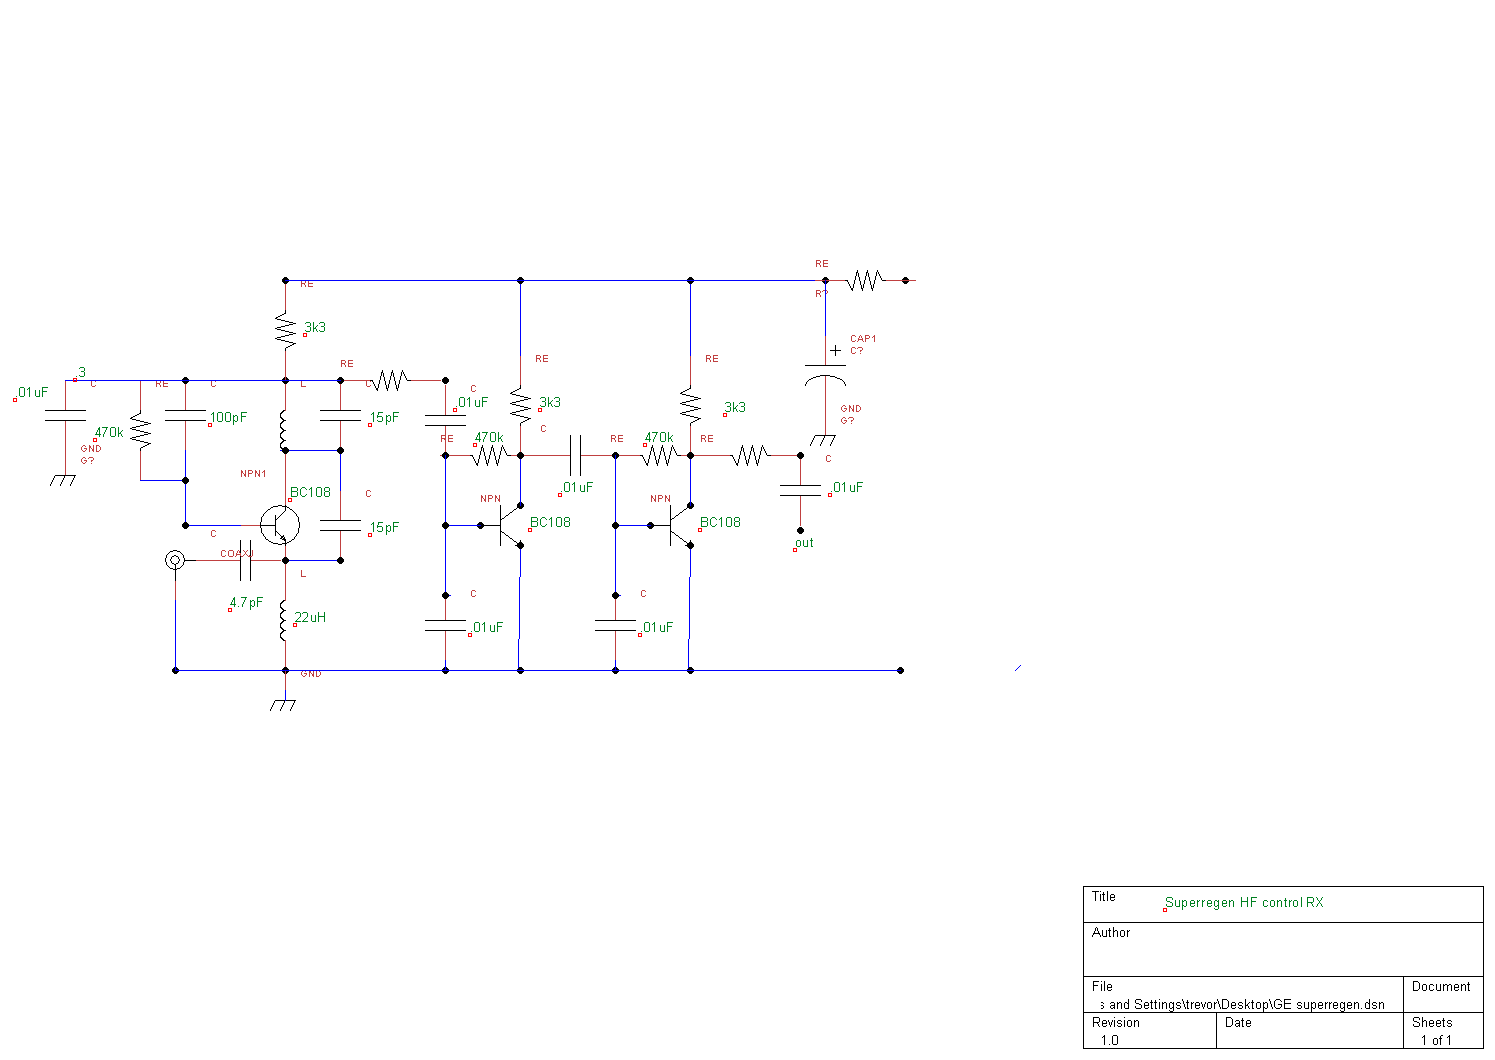 Electronic Circuit Schematics Build Your Own Security Systems Ir Receiver Diagram For Superregenerative Built By Ge Labs